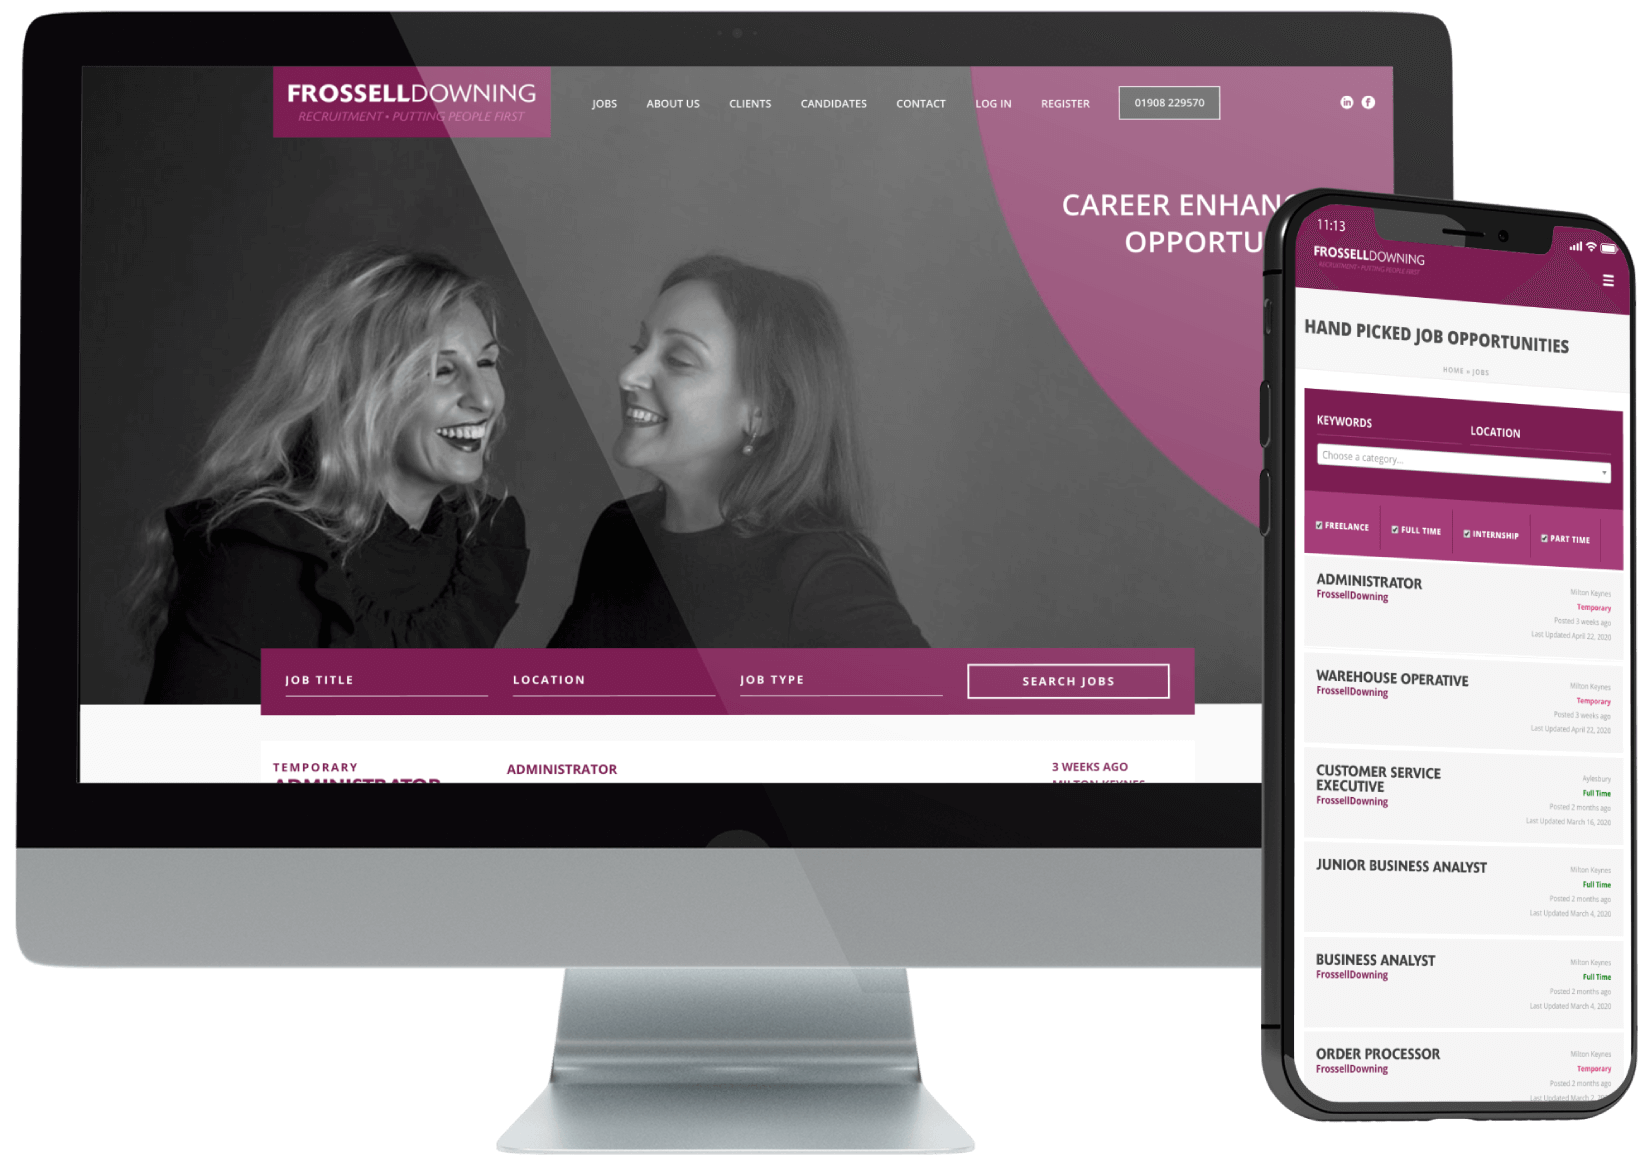 Frossell Downing Recruitment Website